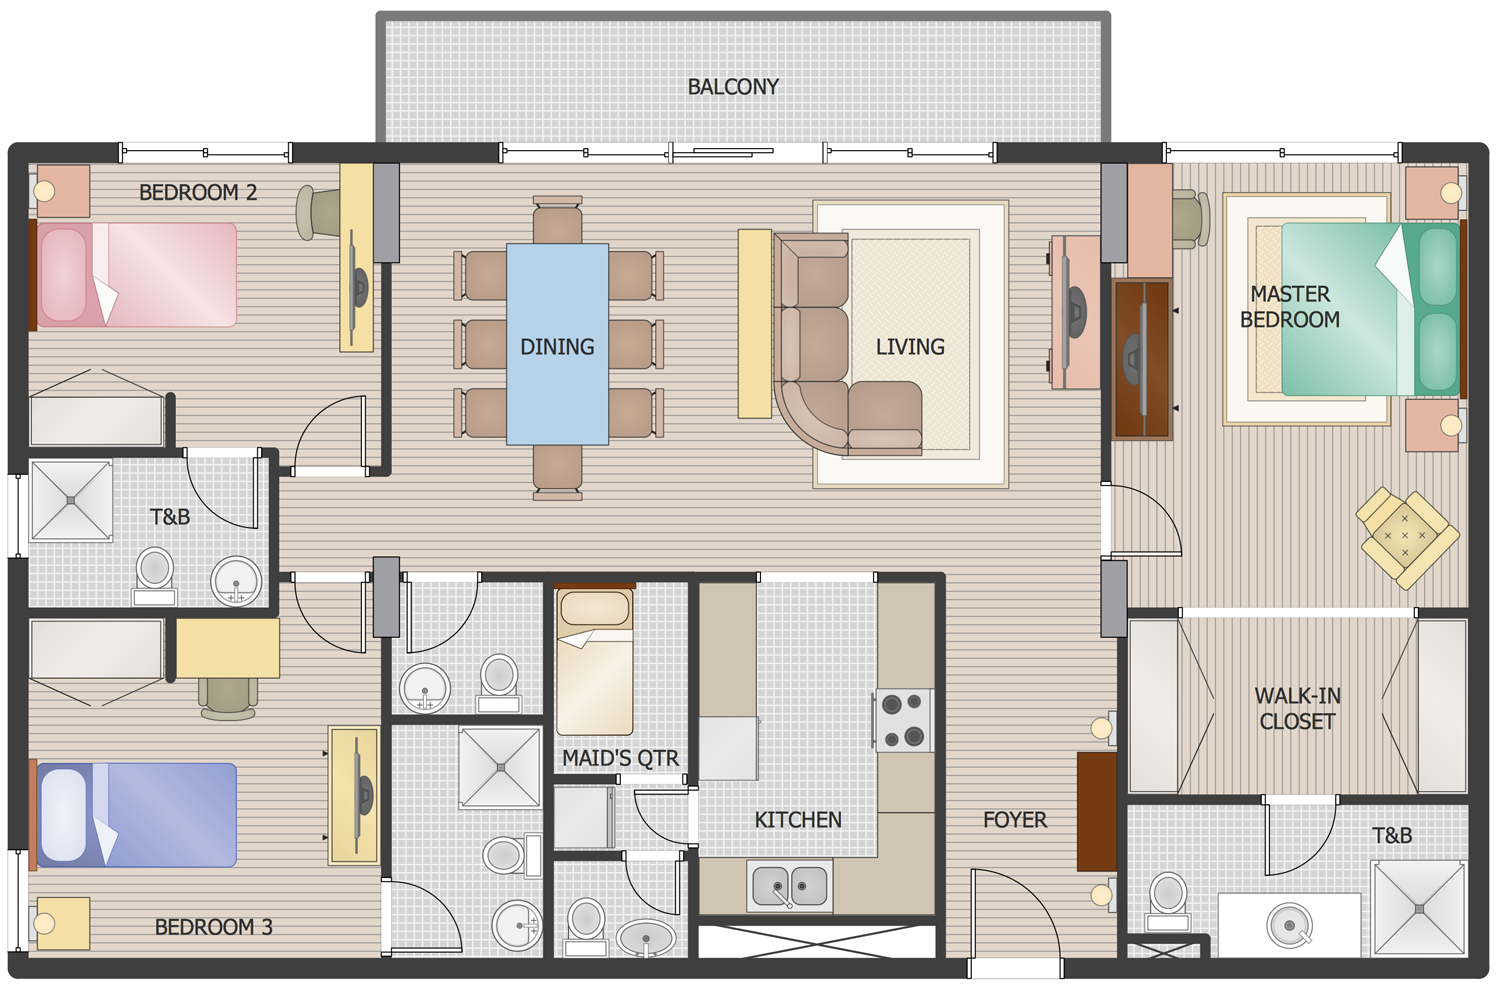 3 Bedroom House Floor Plan